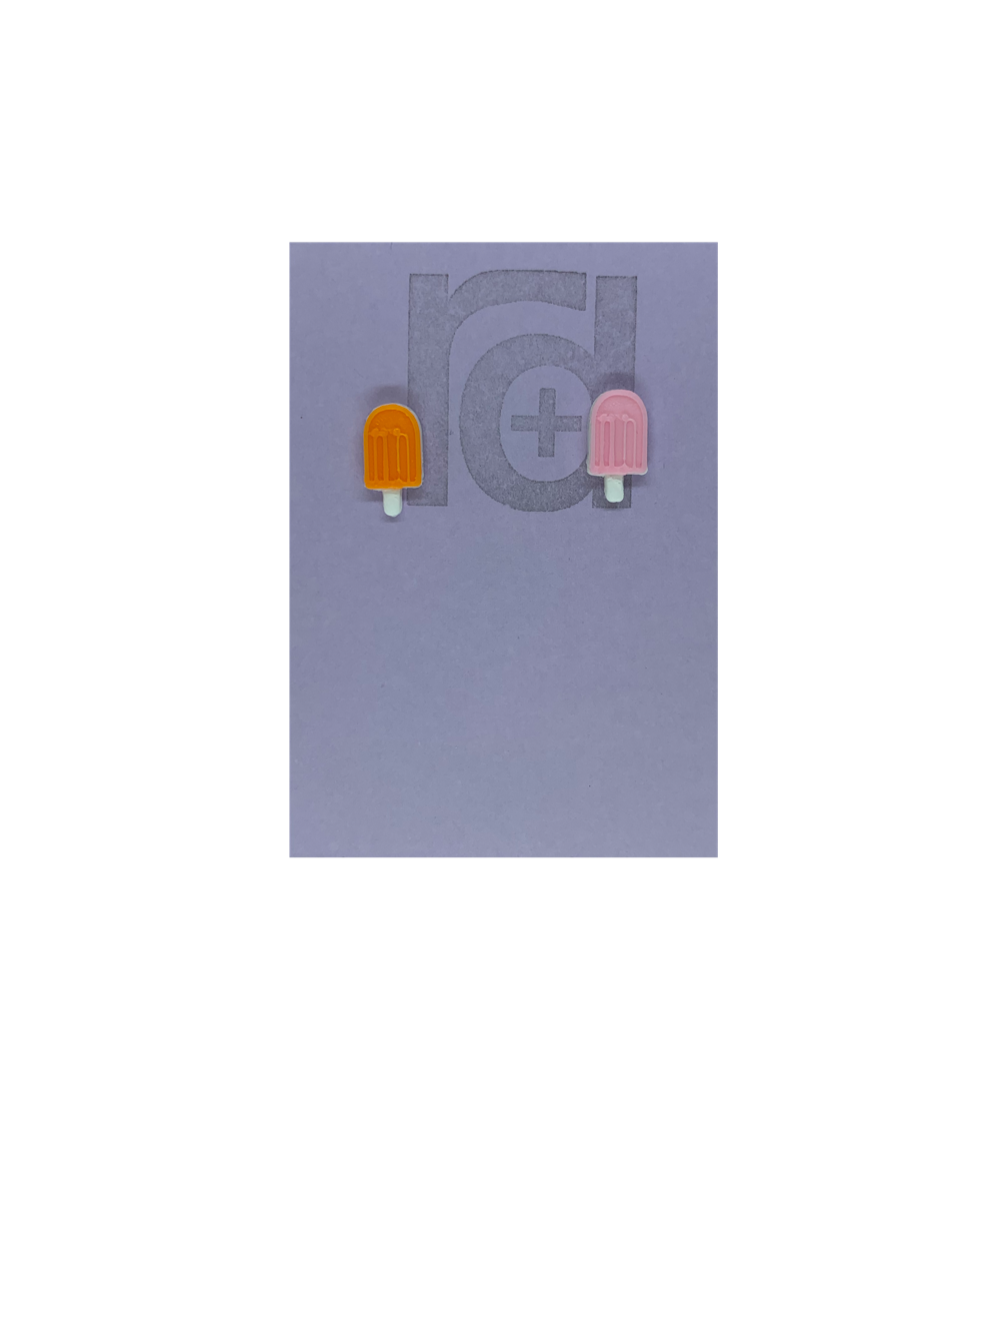 Two small and detailed R+D earrings are shown on a purple earring card. They are shaped as popsicles with white sticks. The earrings are mismatched, one popsicle is a vibrant orange and one is light pink